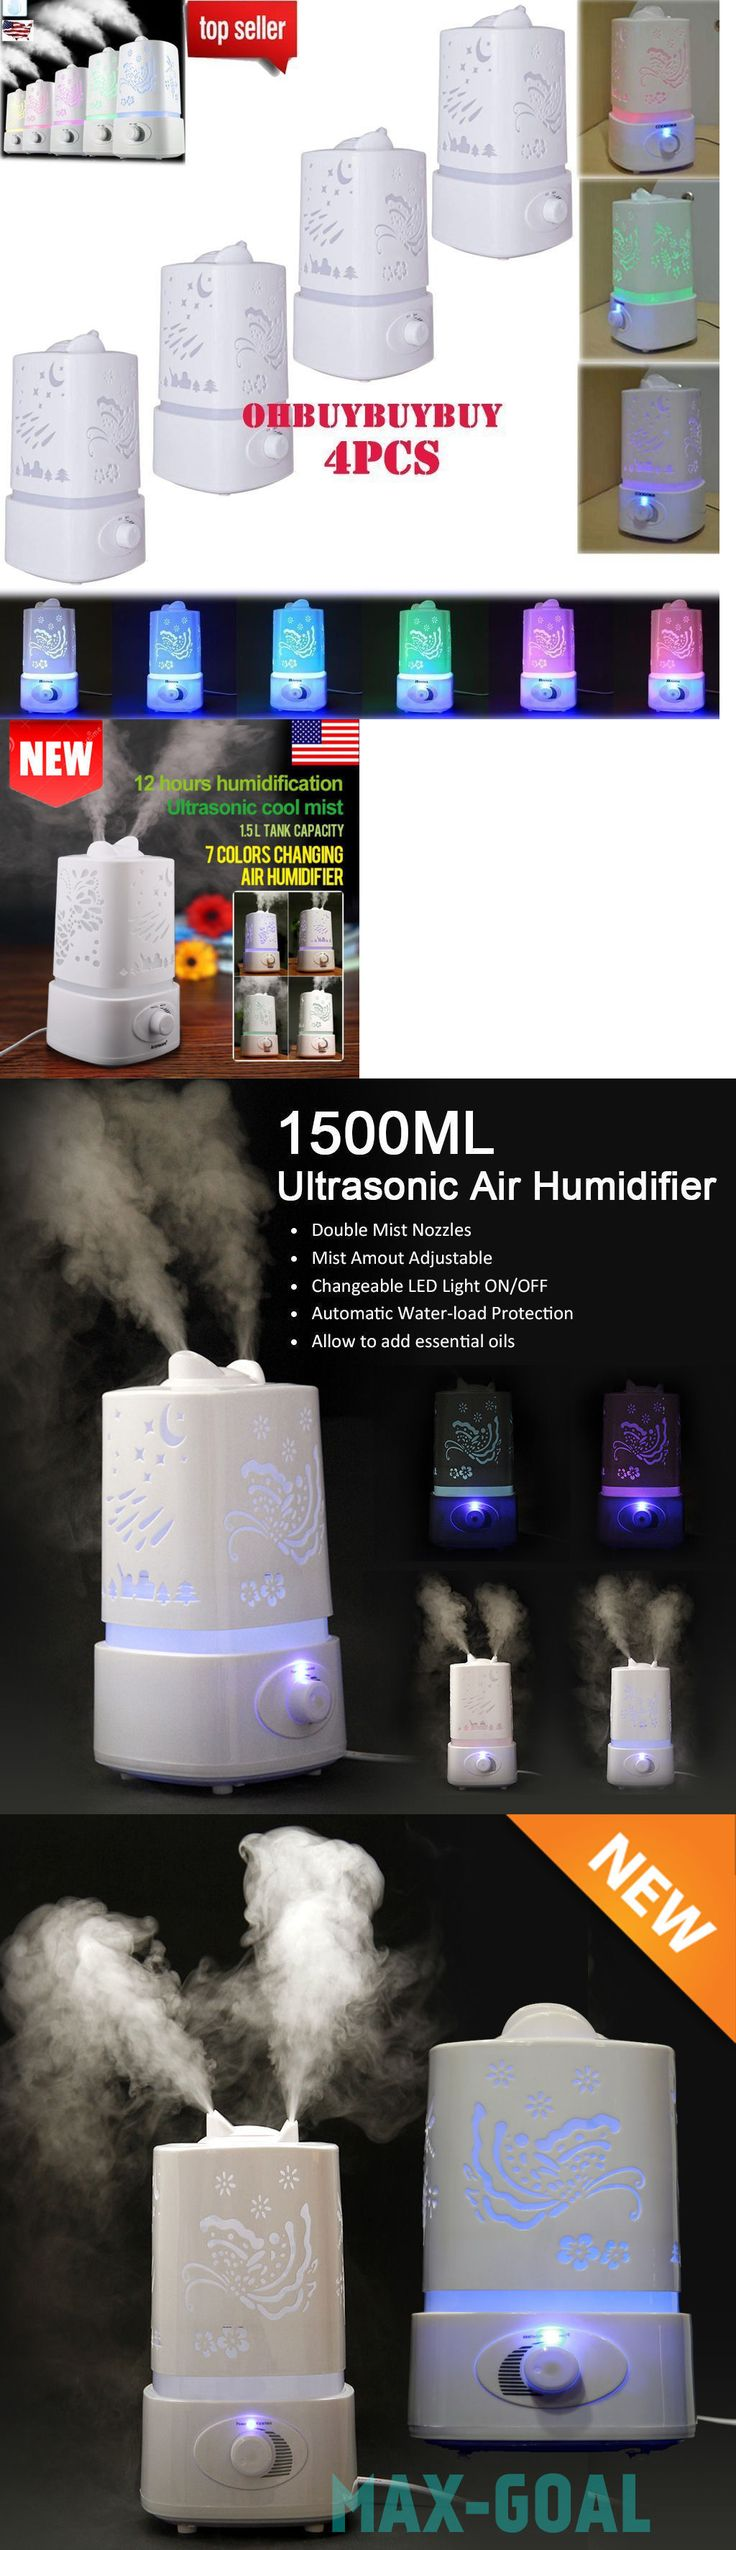 Humidifiers 71240: 4Pcs 1.5L Ultrasonic Aroma Humidifier Air Diffuser Purifier Lonizer Atomizer Vip -> BUY IT NOW ONLY: $53.95 on eBay!